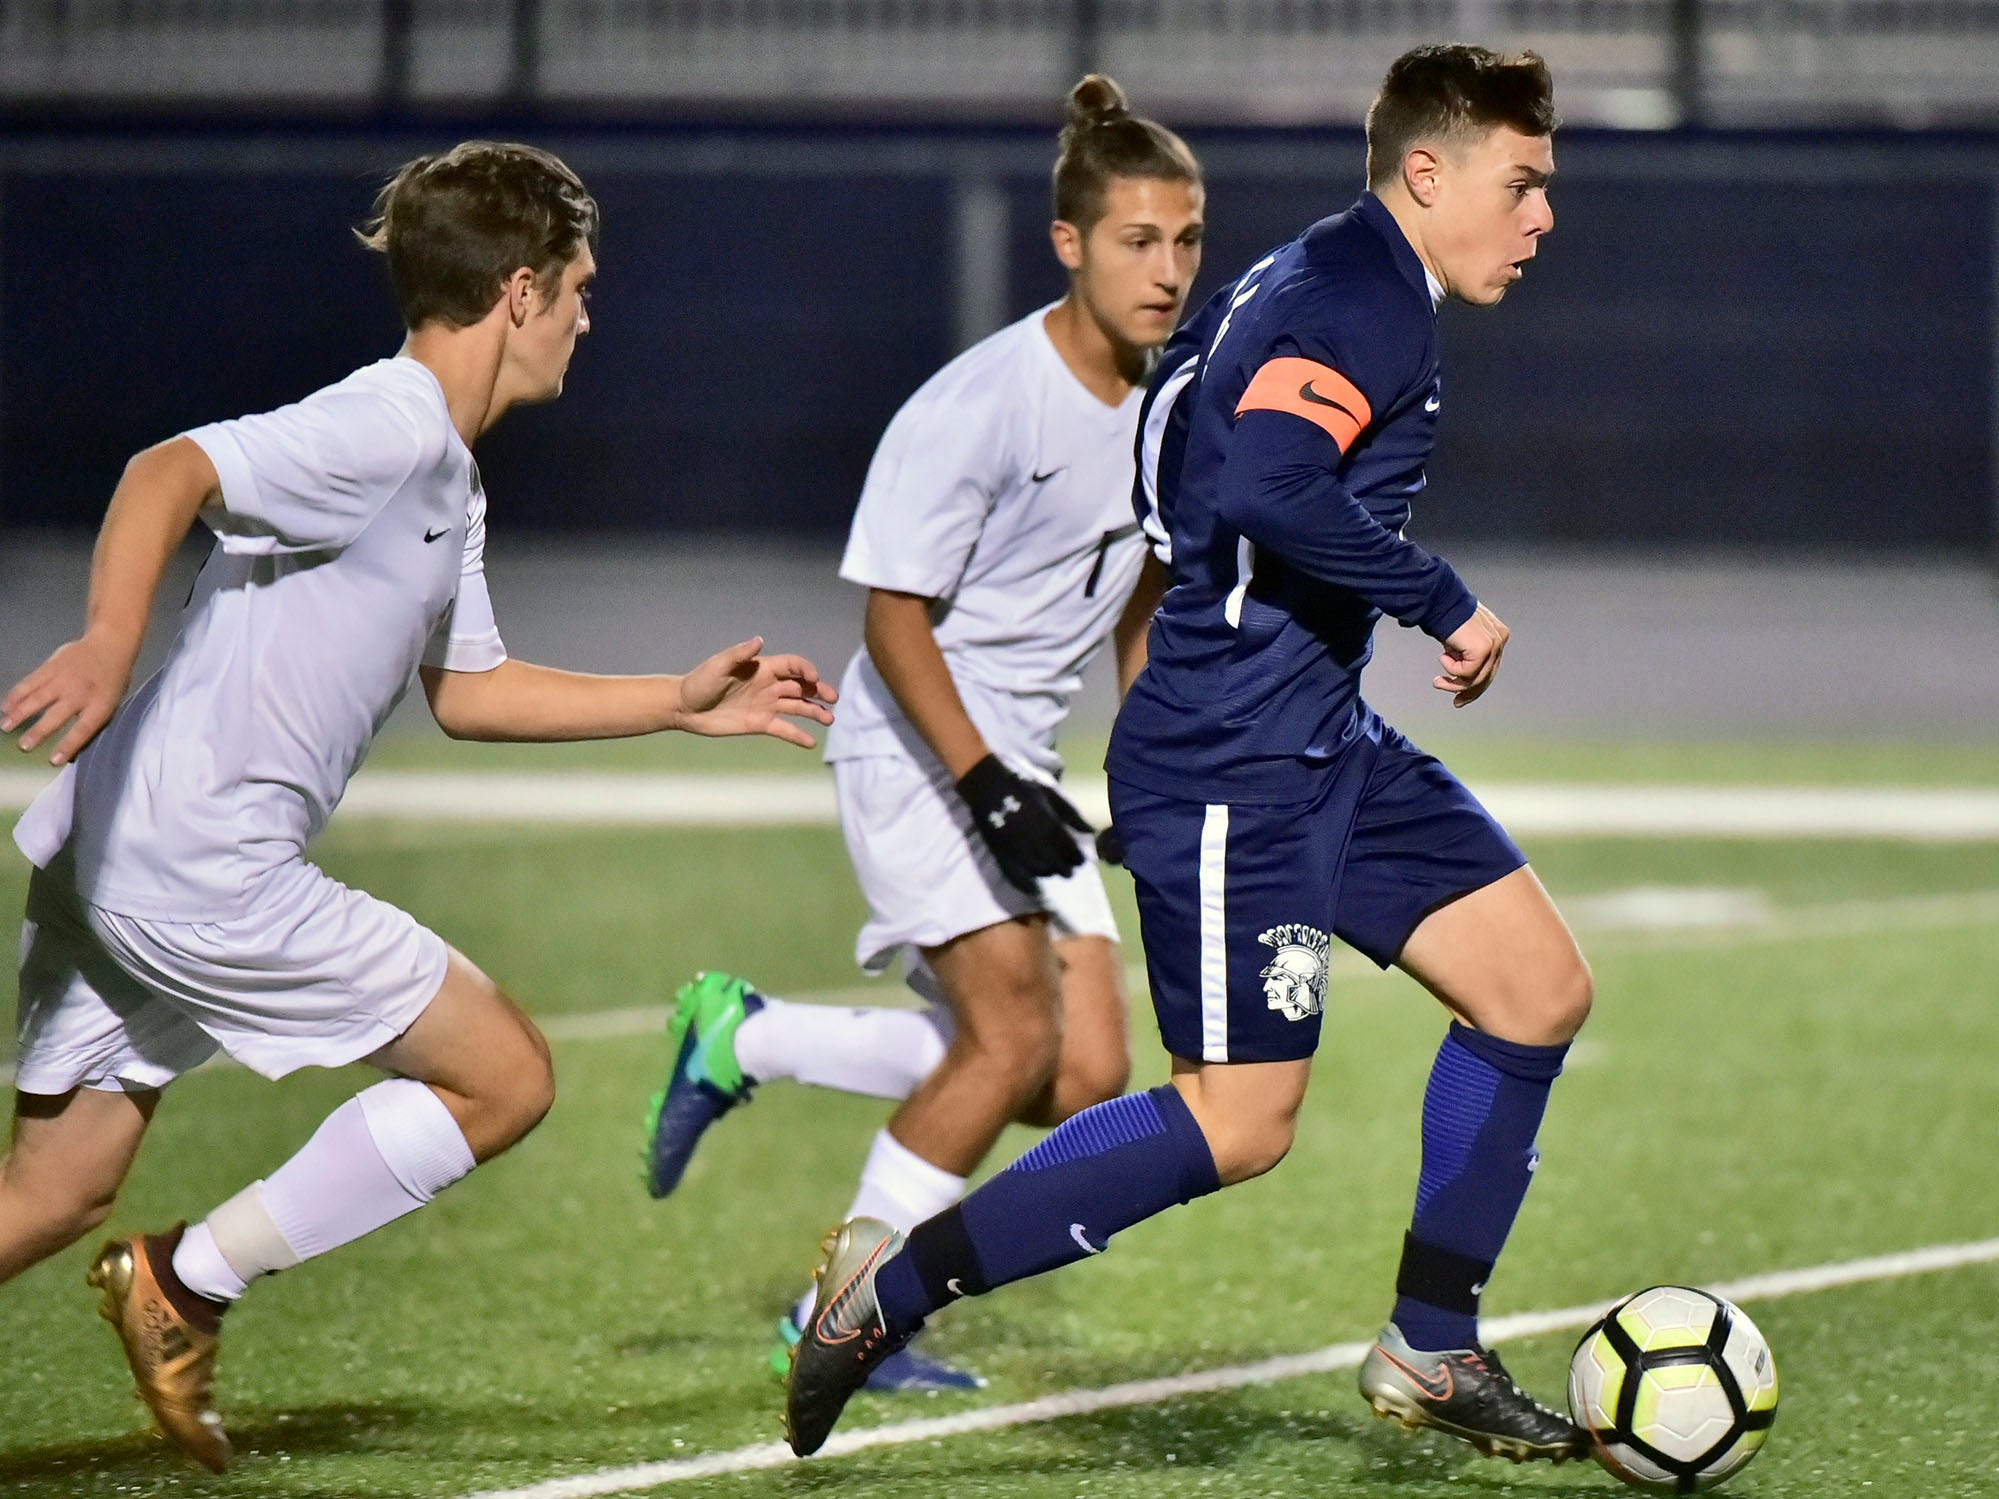 Chambersburg lost a first round D3 soccer match to Dallastown 2-1 on Tuesday, Oct. 23, 2018.